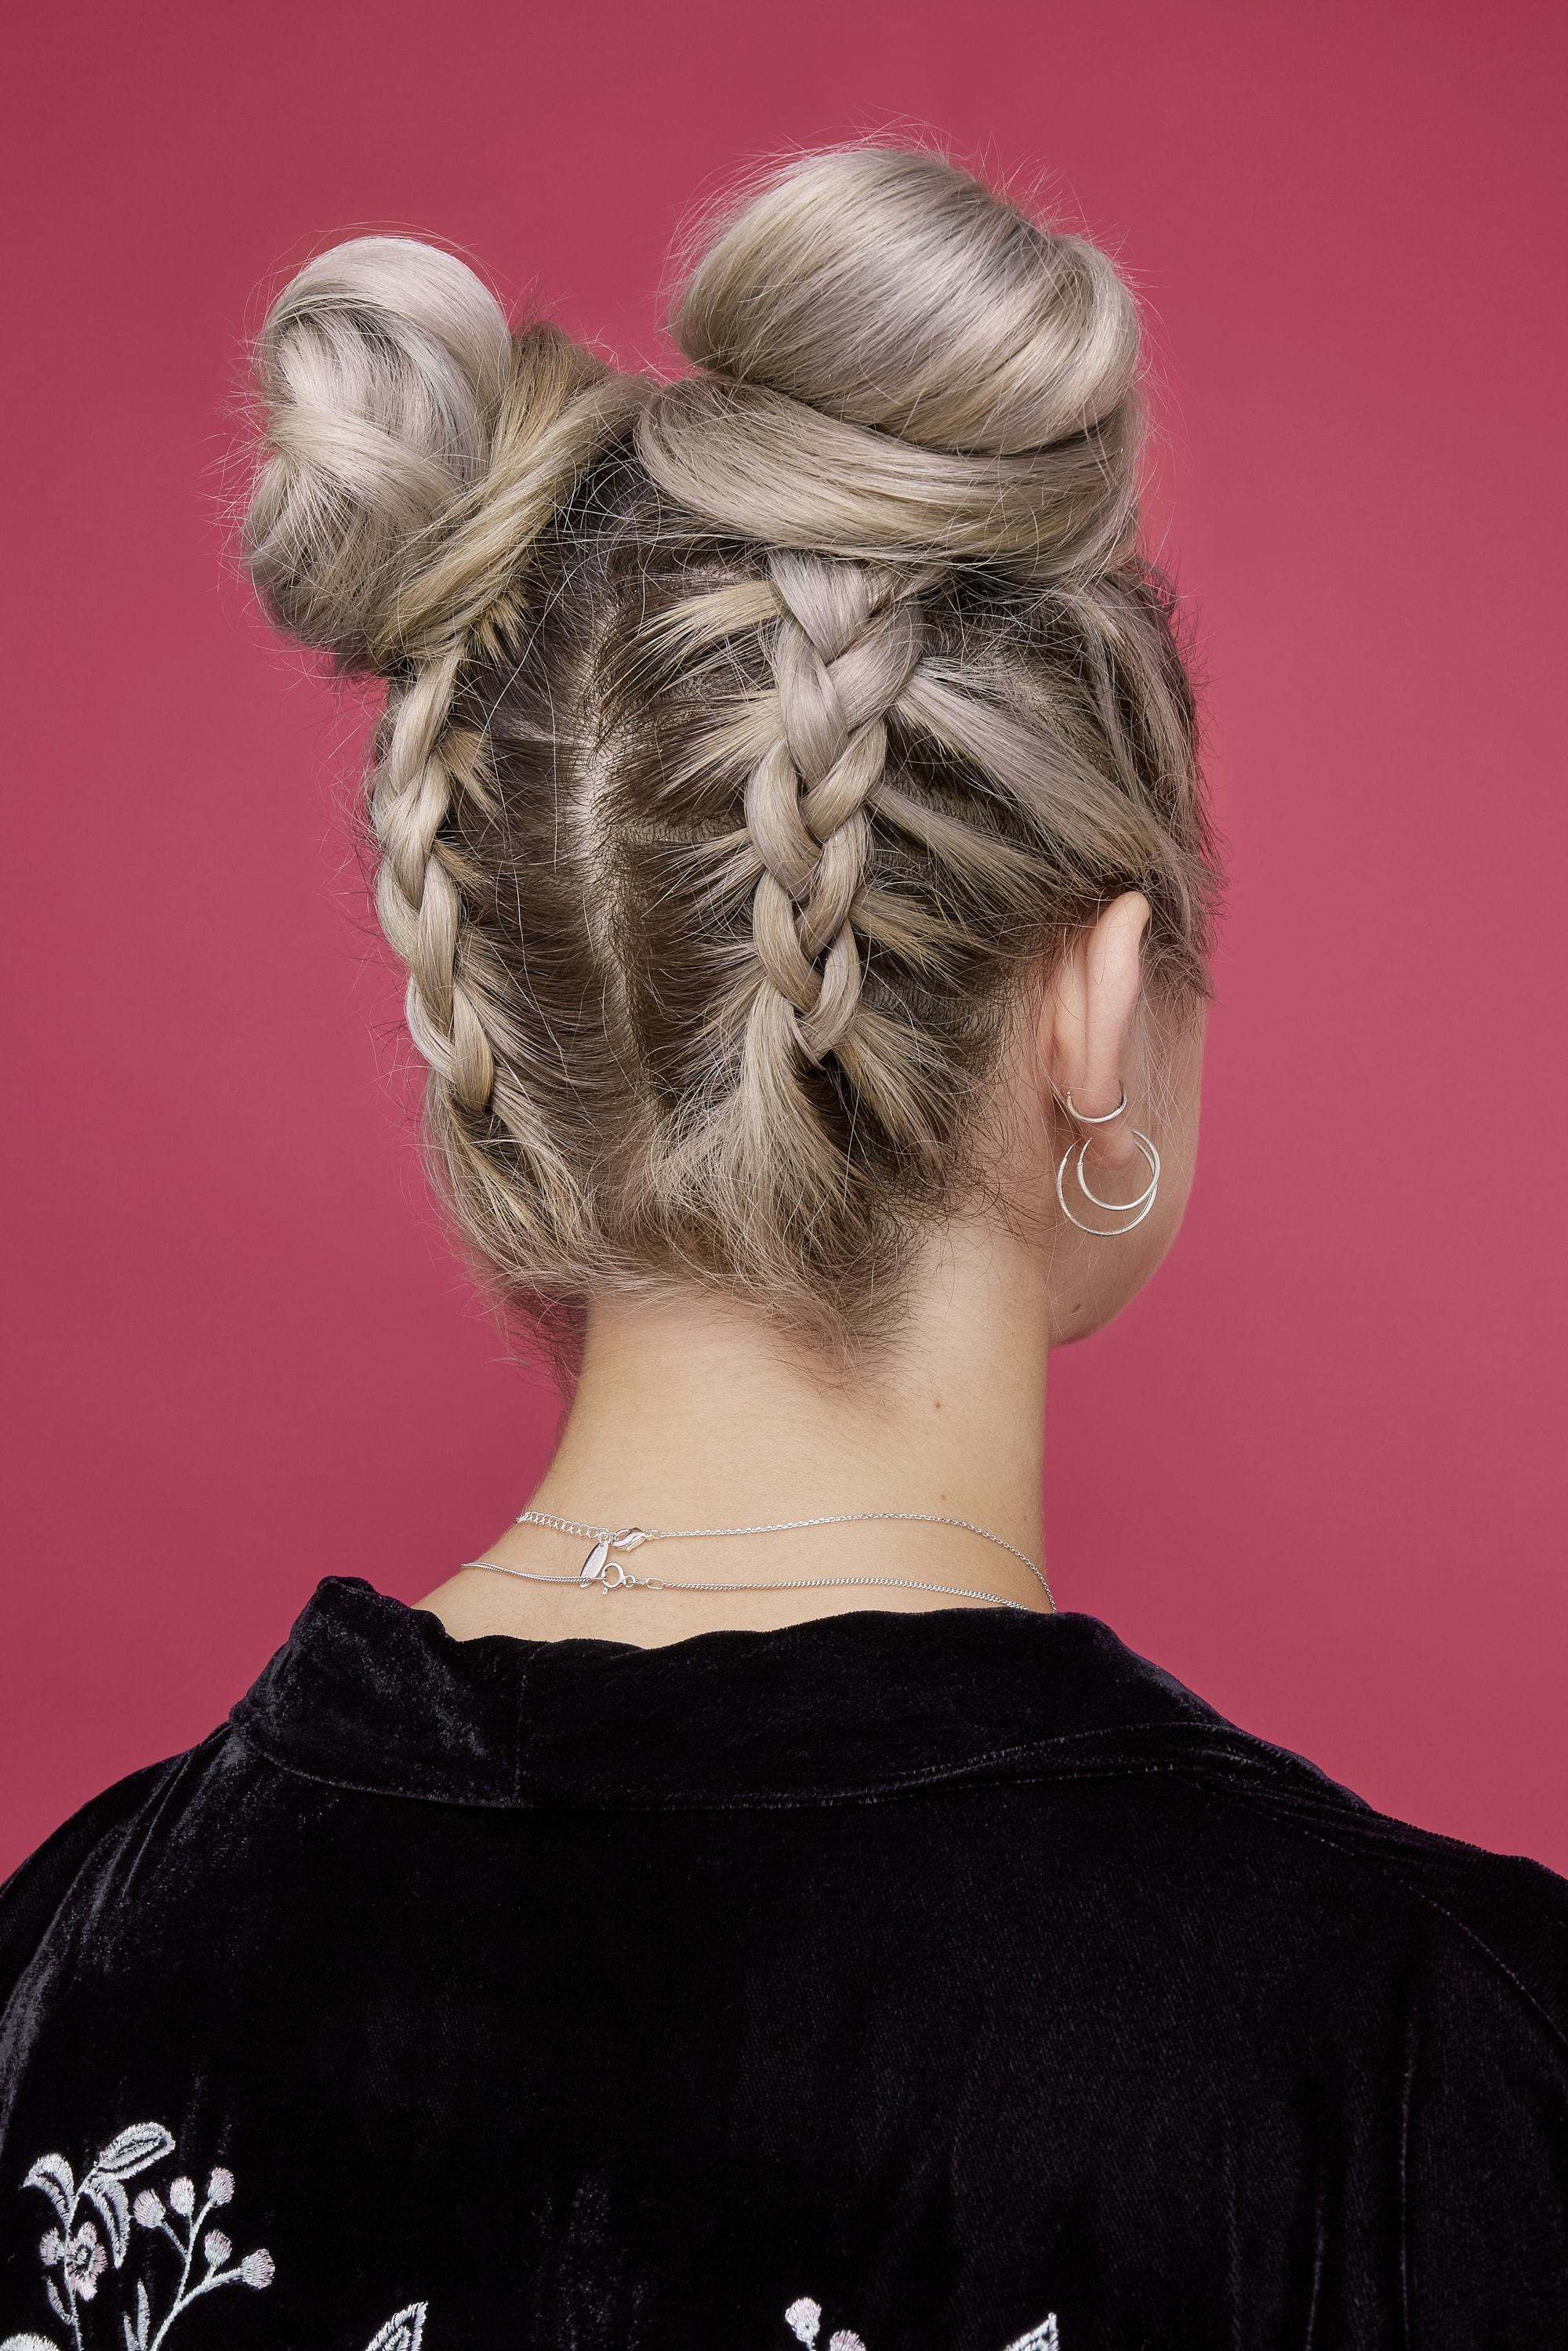 13 easy and on-trend bun hairstyles for every occasion ...